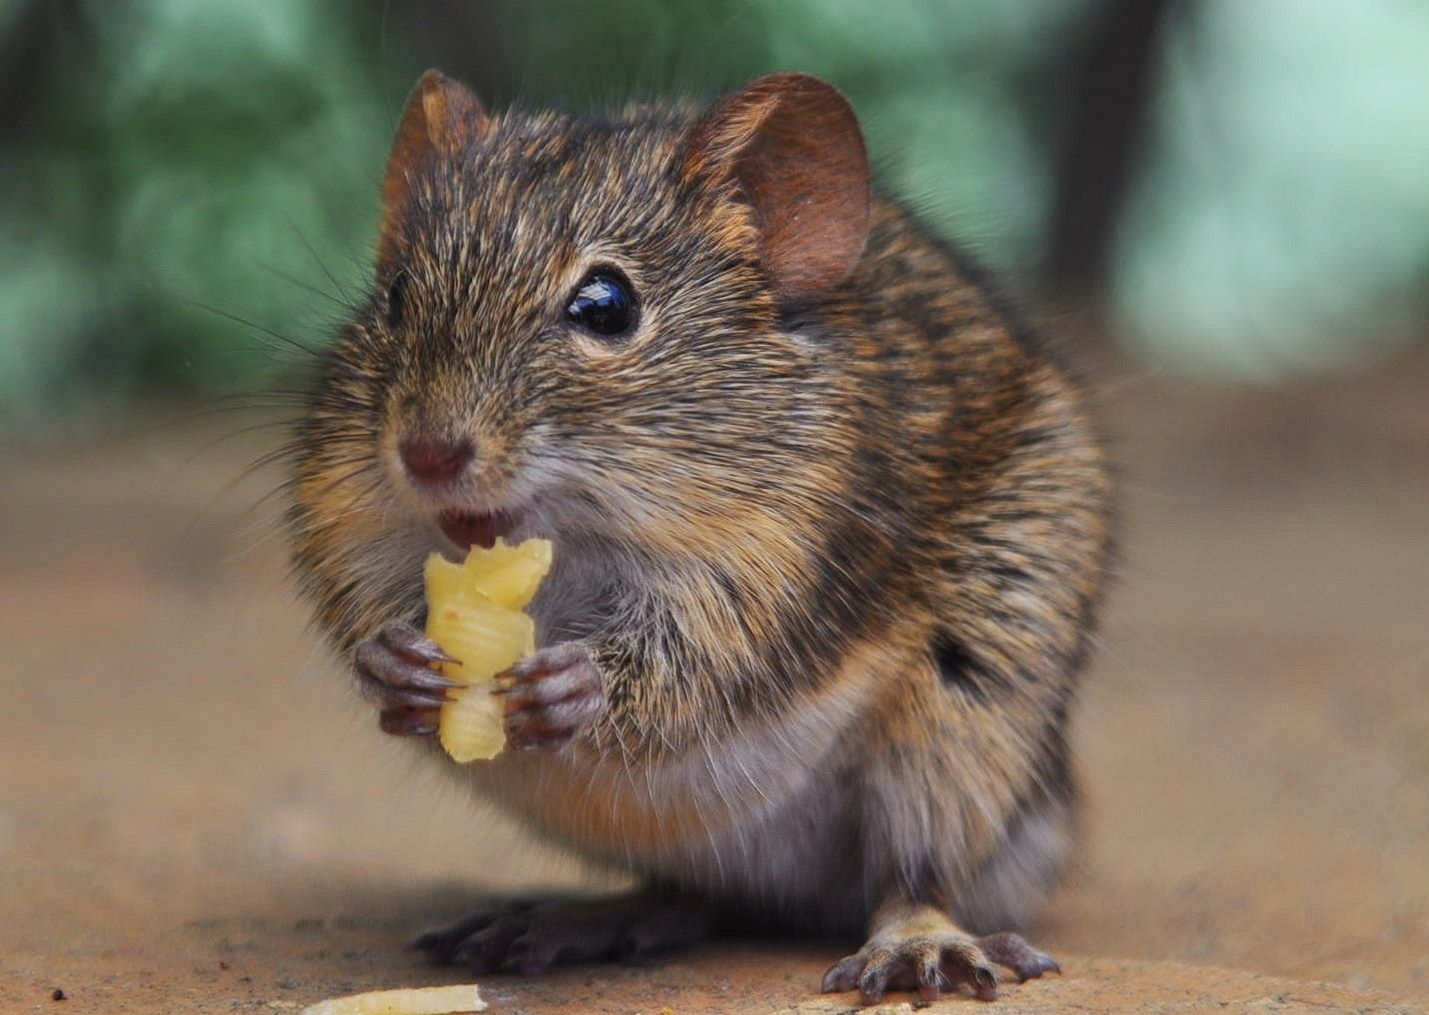 Keep your kitchen crumbfree. Food lures mice and roaches